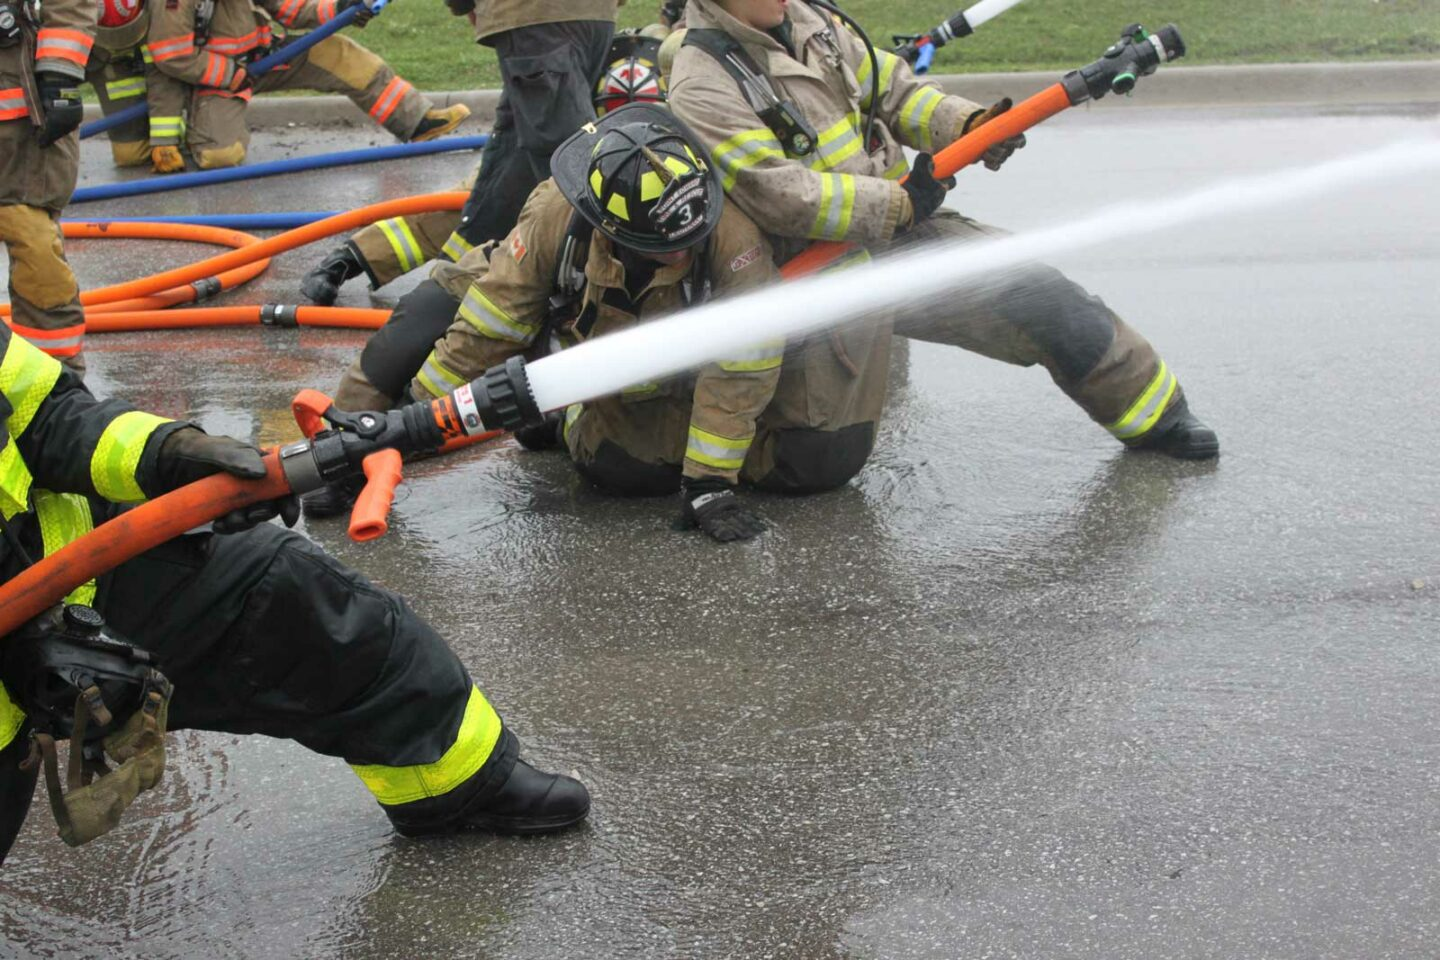 A firefighter on the nozzle extends his leg to check the floor surface in front of him.